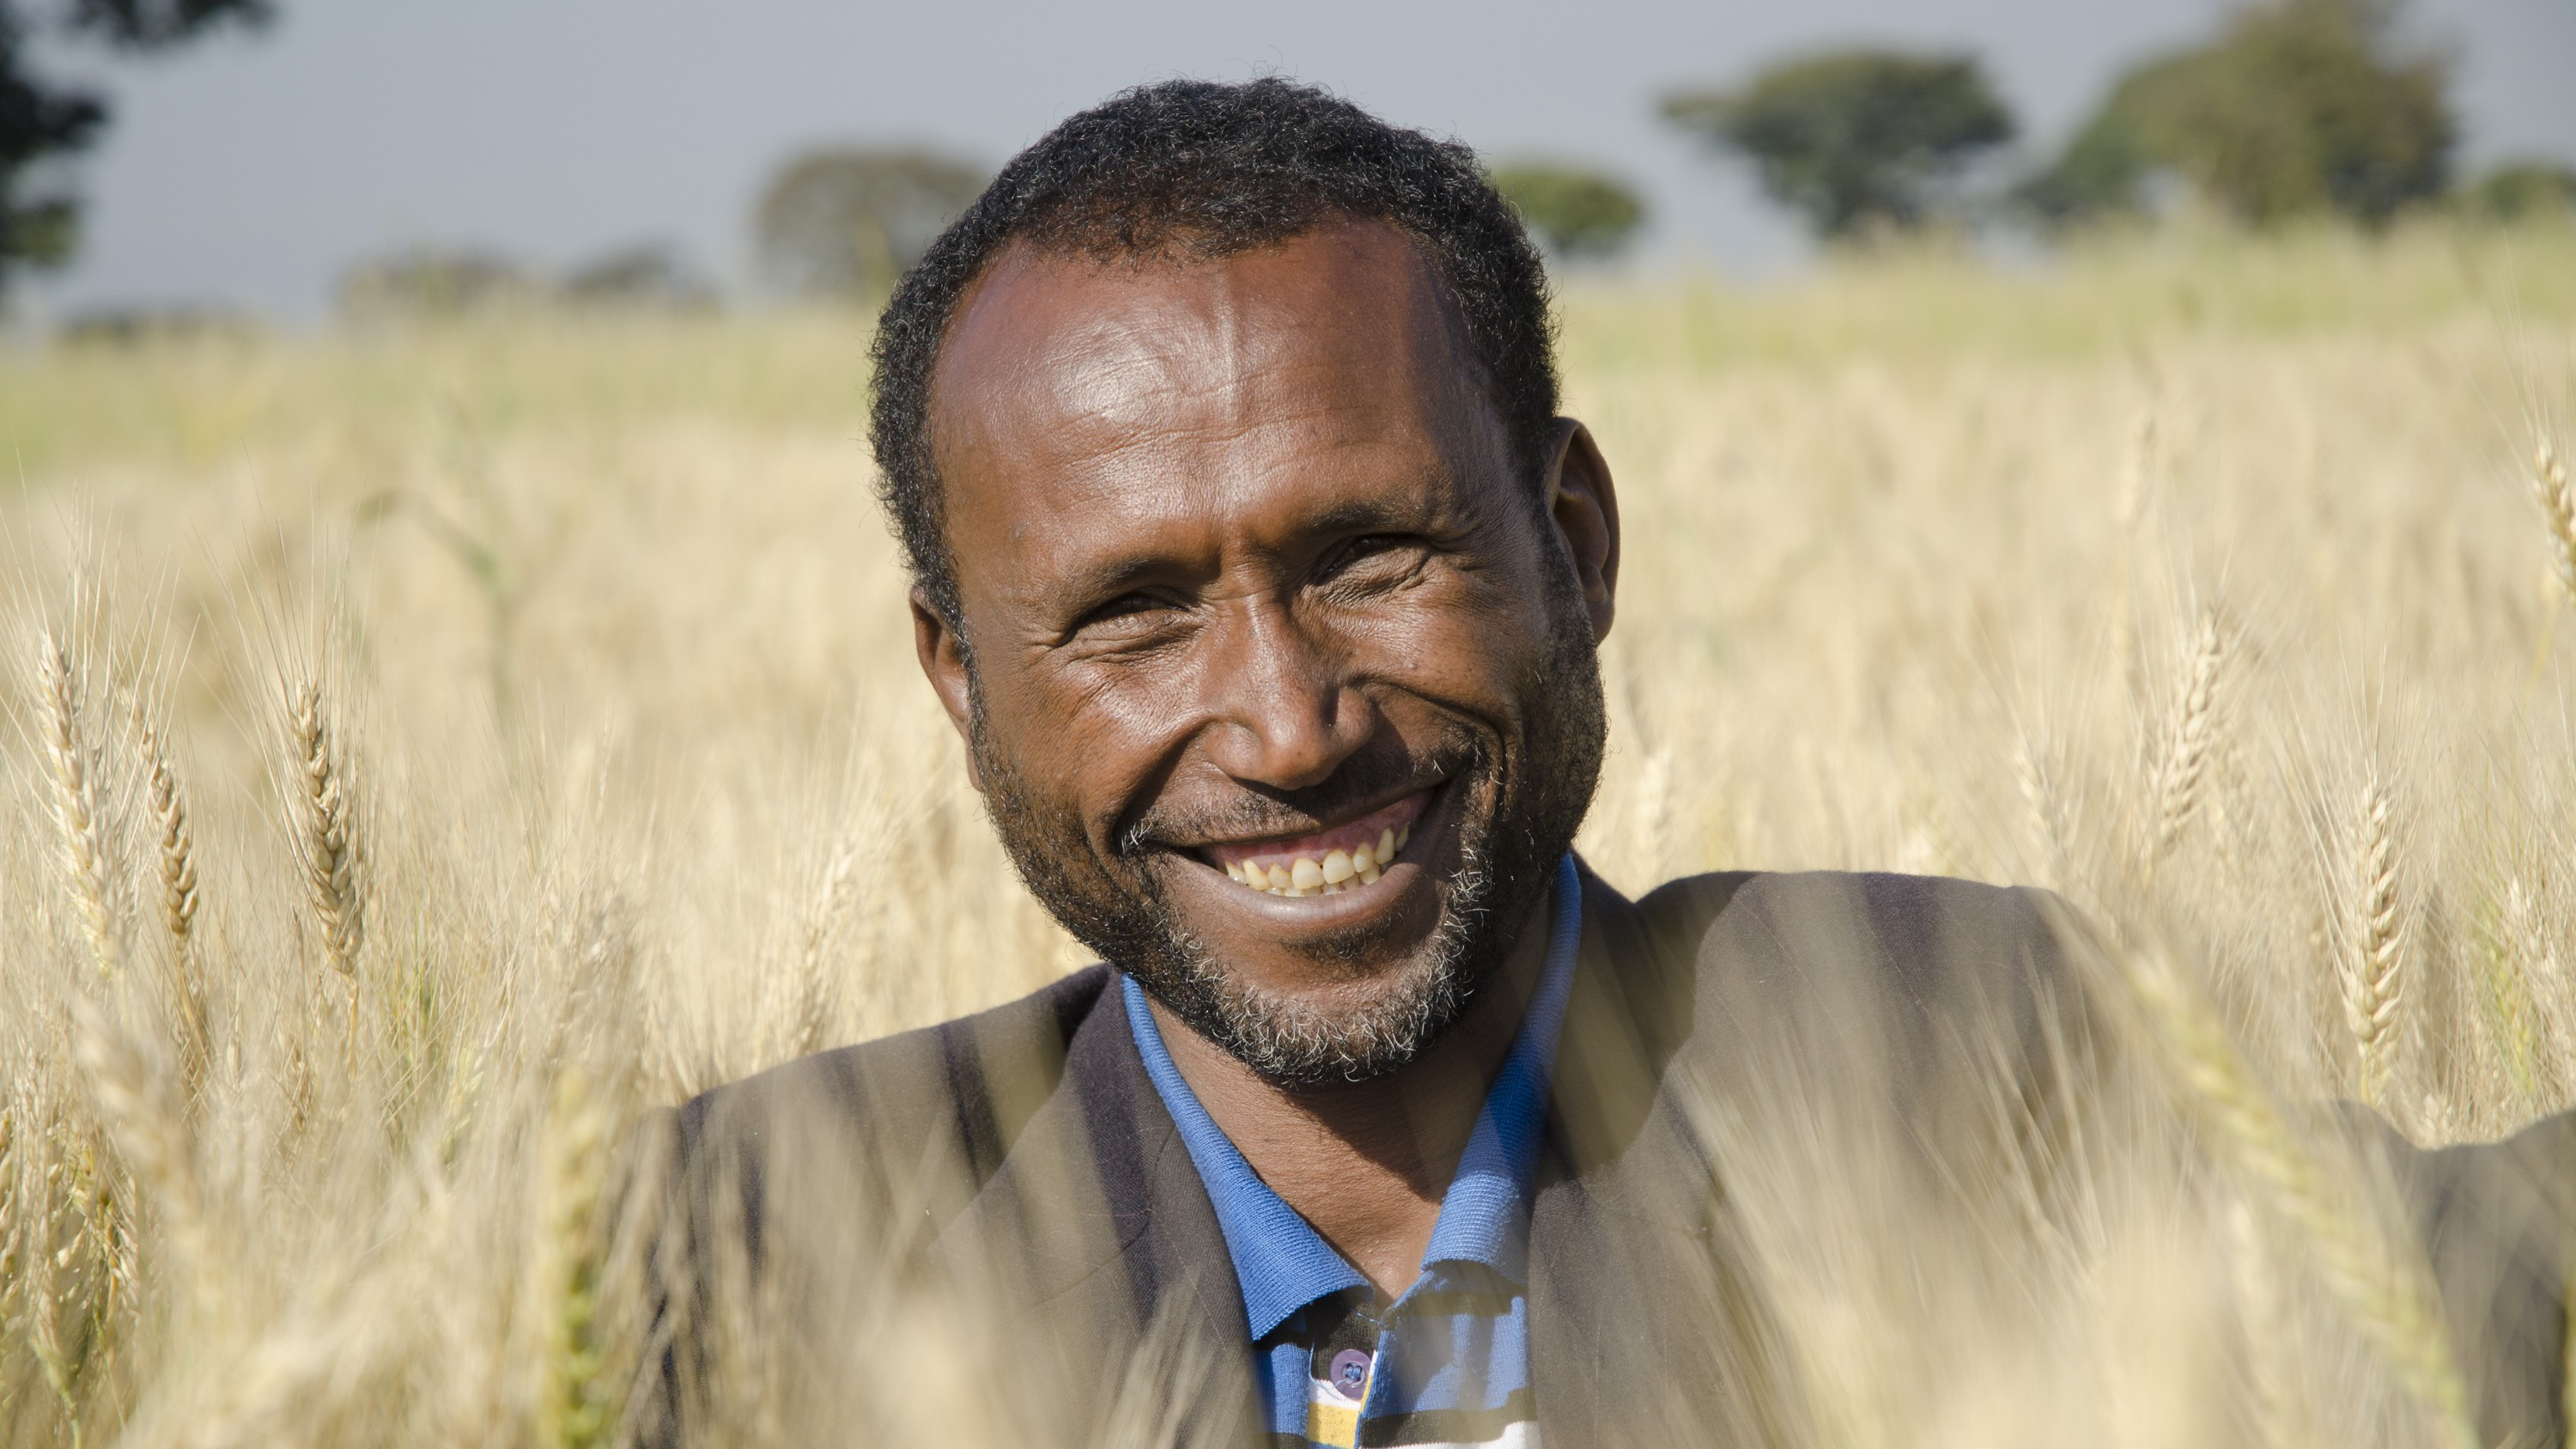 Dadie Buta, 38, in his fields in Karsa Ilela village, Arsi Negele, in the West Arsi zone in Ethiopia.